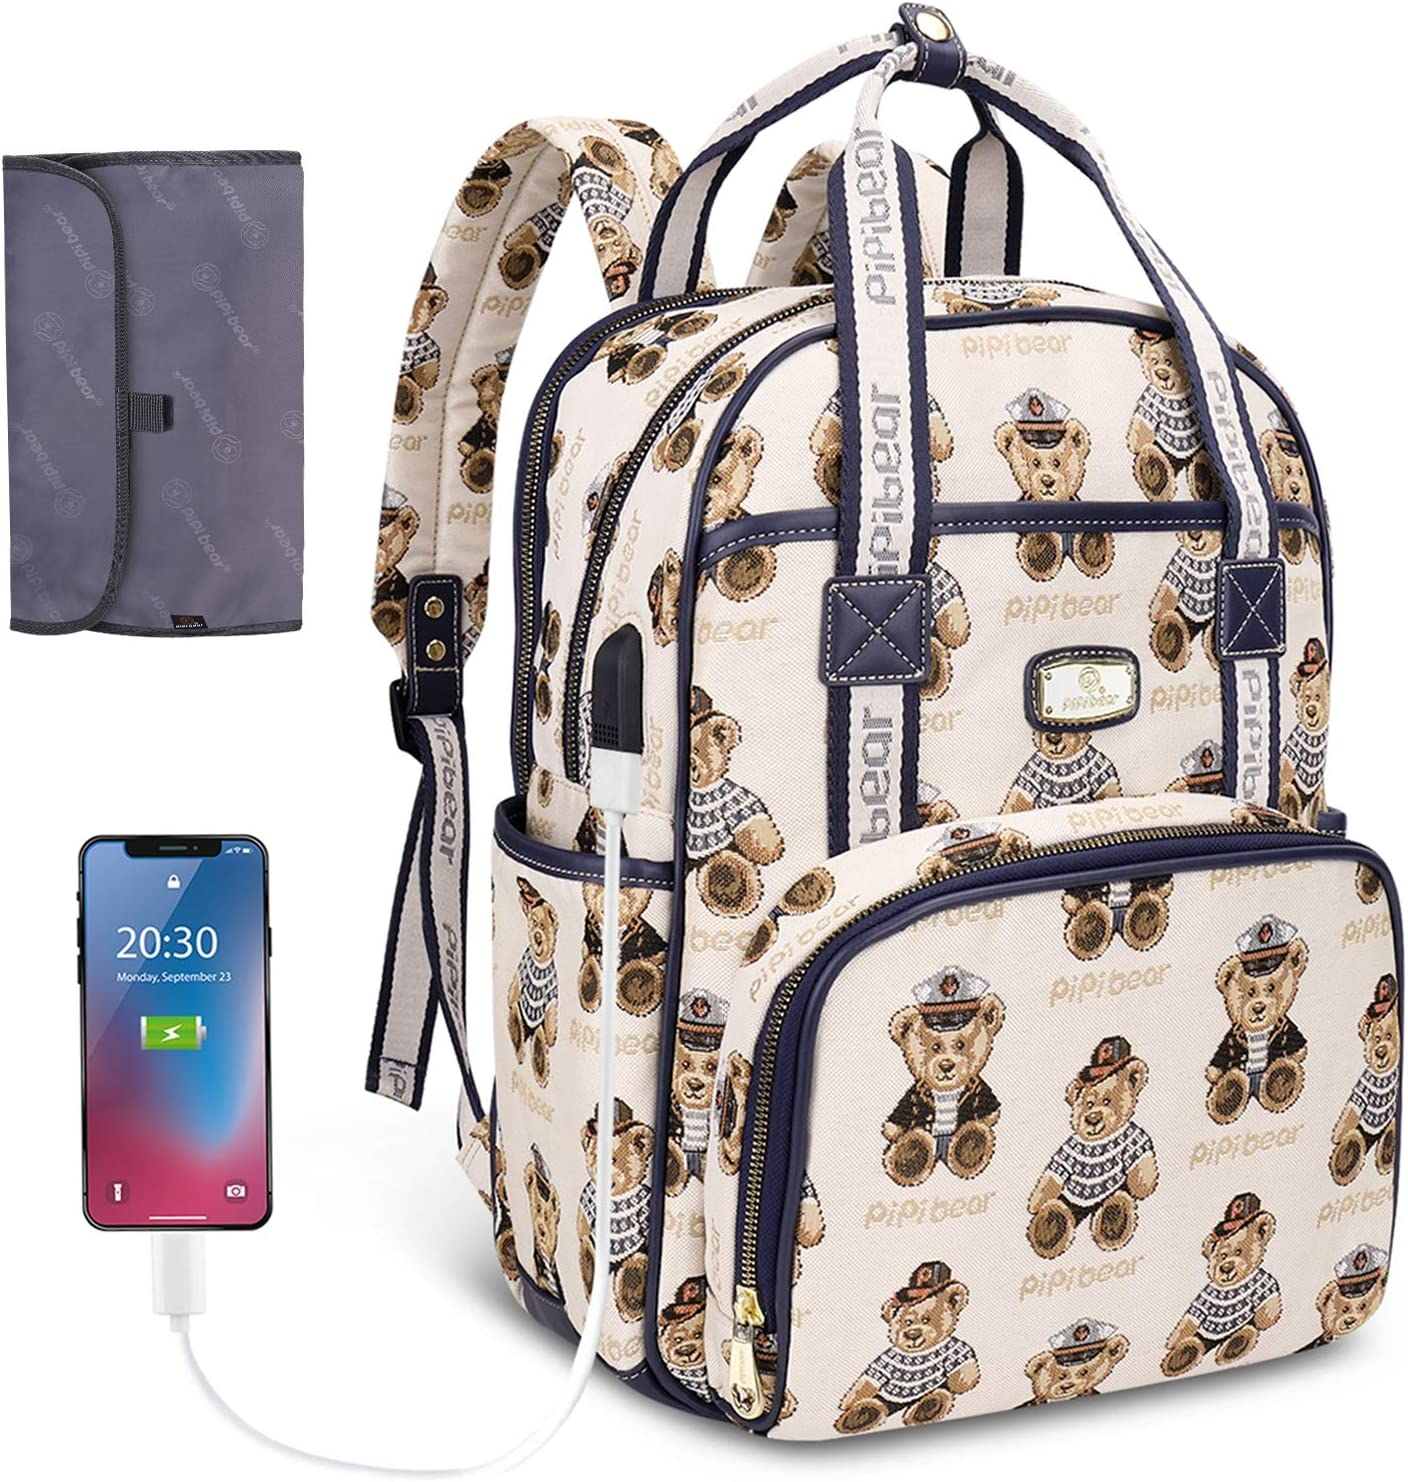 Diaper Bag Backpack,Pipi bear Travel Diaper Backpack with USB Charging Port and Changing Pad, Stylish Large Capacity Mummy Maternity Nappy Bag ( Cream )